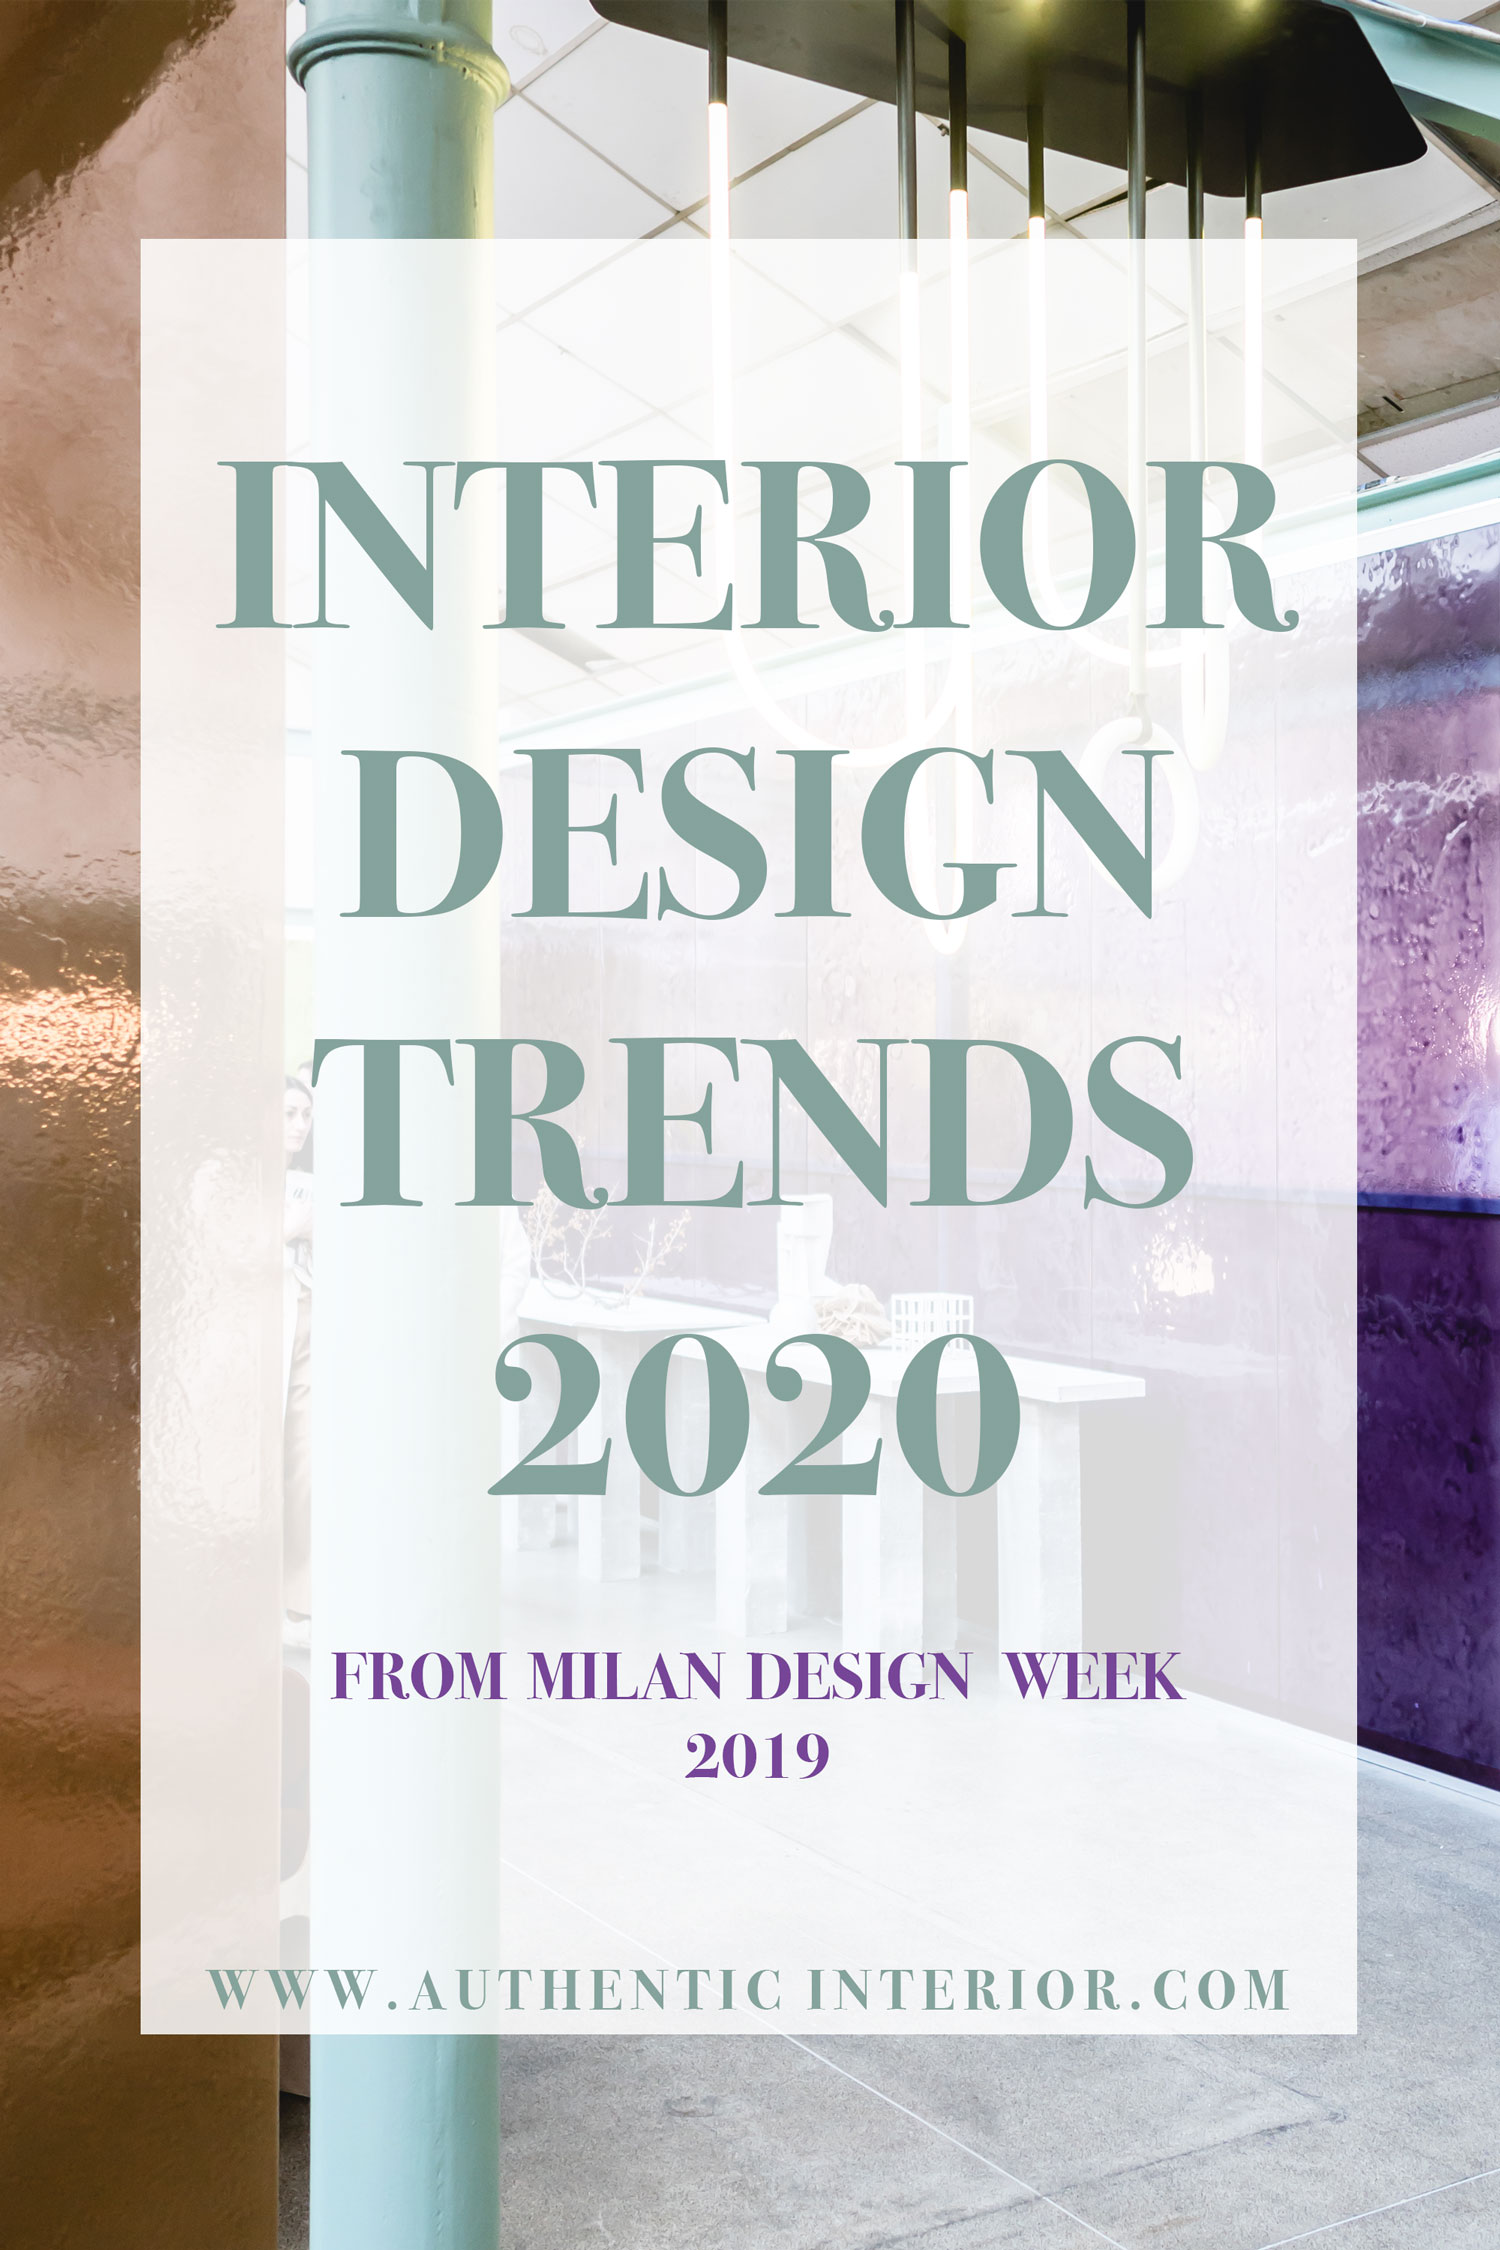 Interior design trends for 2020 - Authentic Interior design studio & blog www.authenticinterior.com